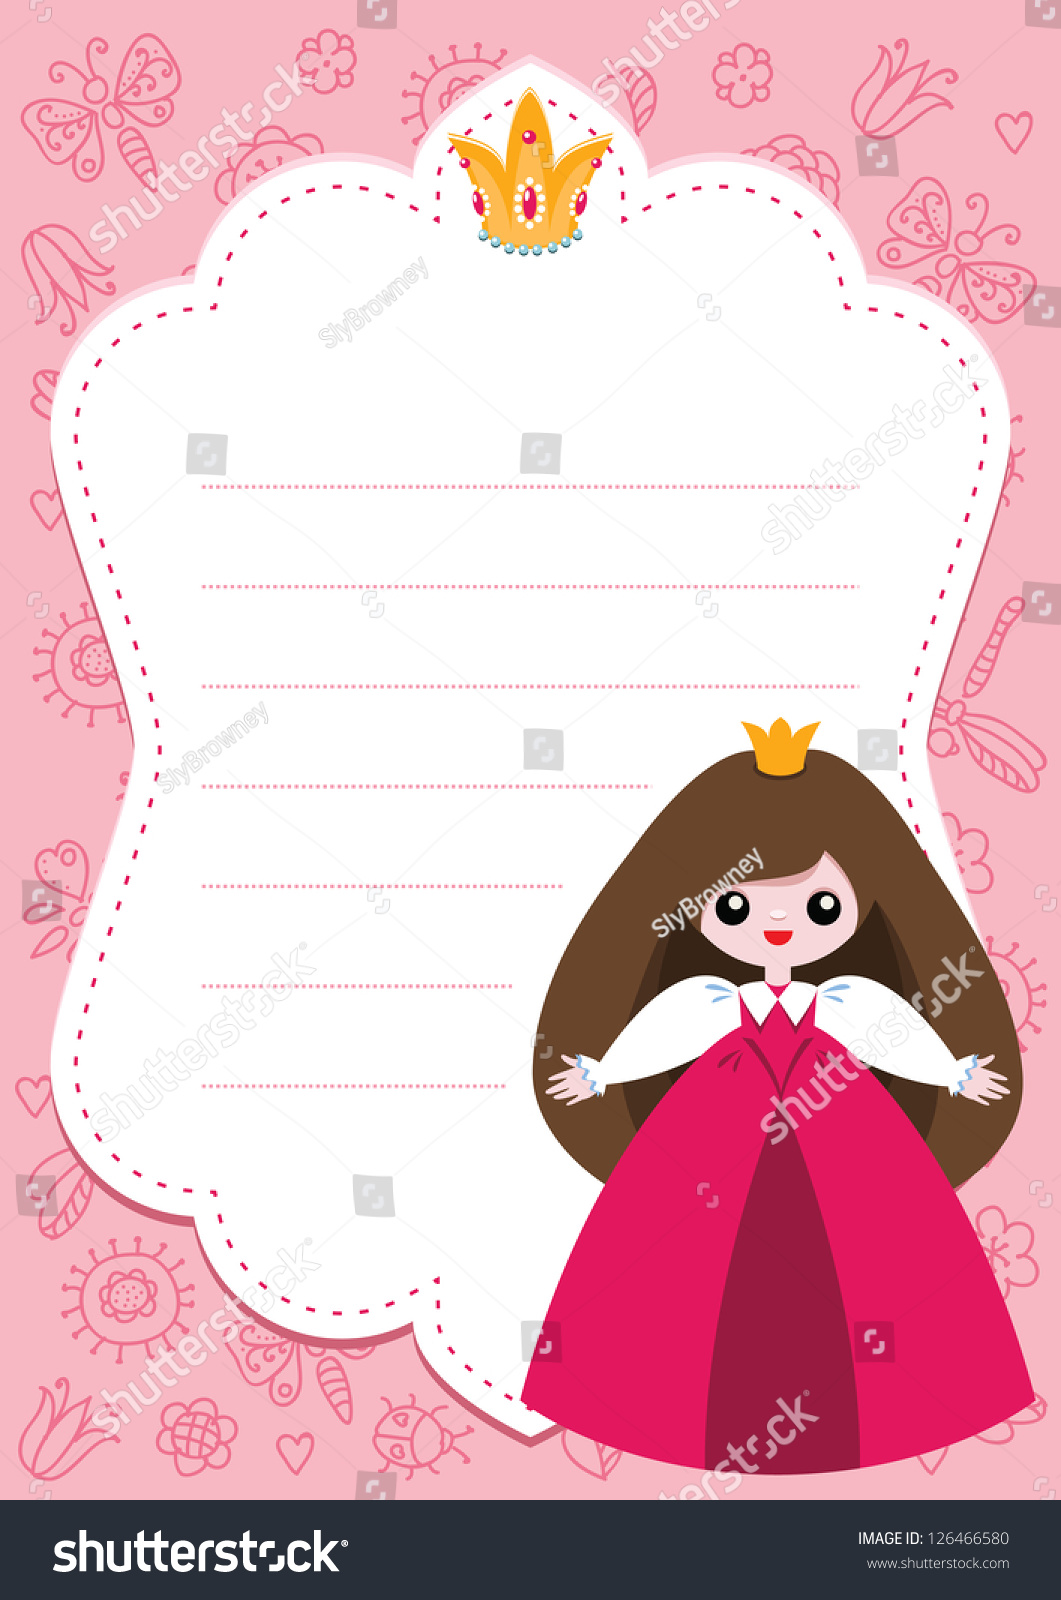 little princess card template blank space stock vector  little princess card template blank space for text